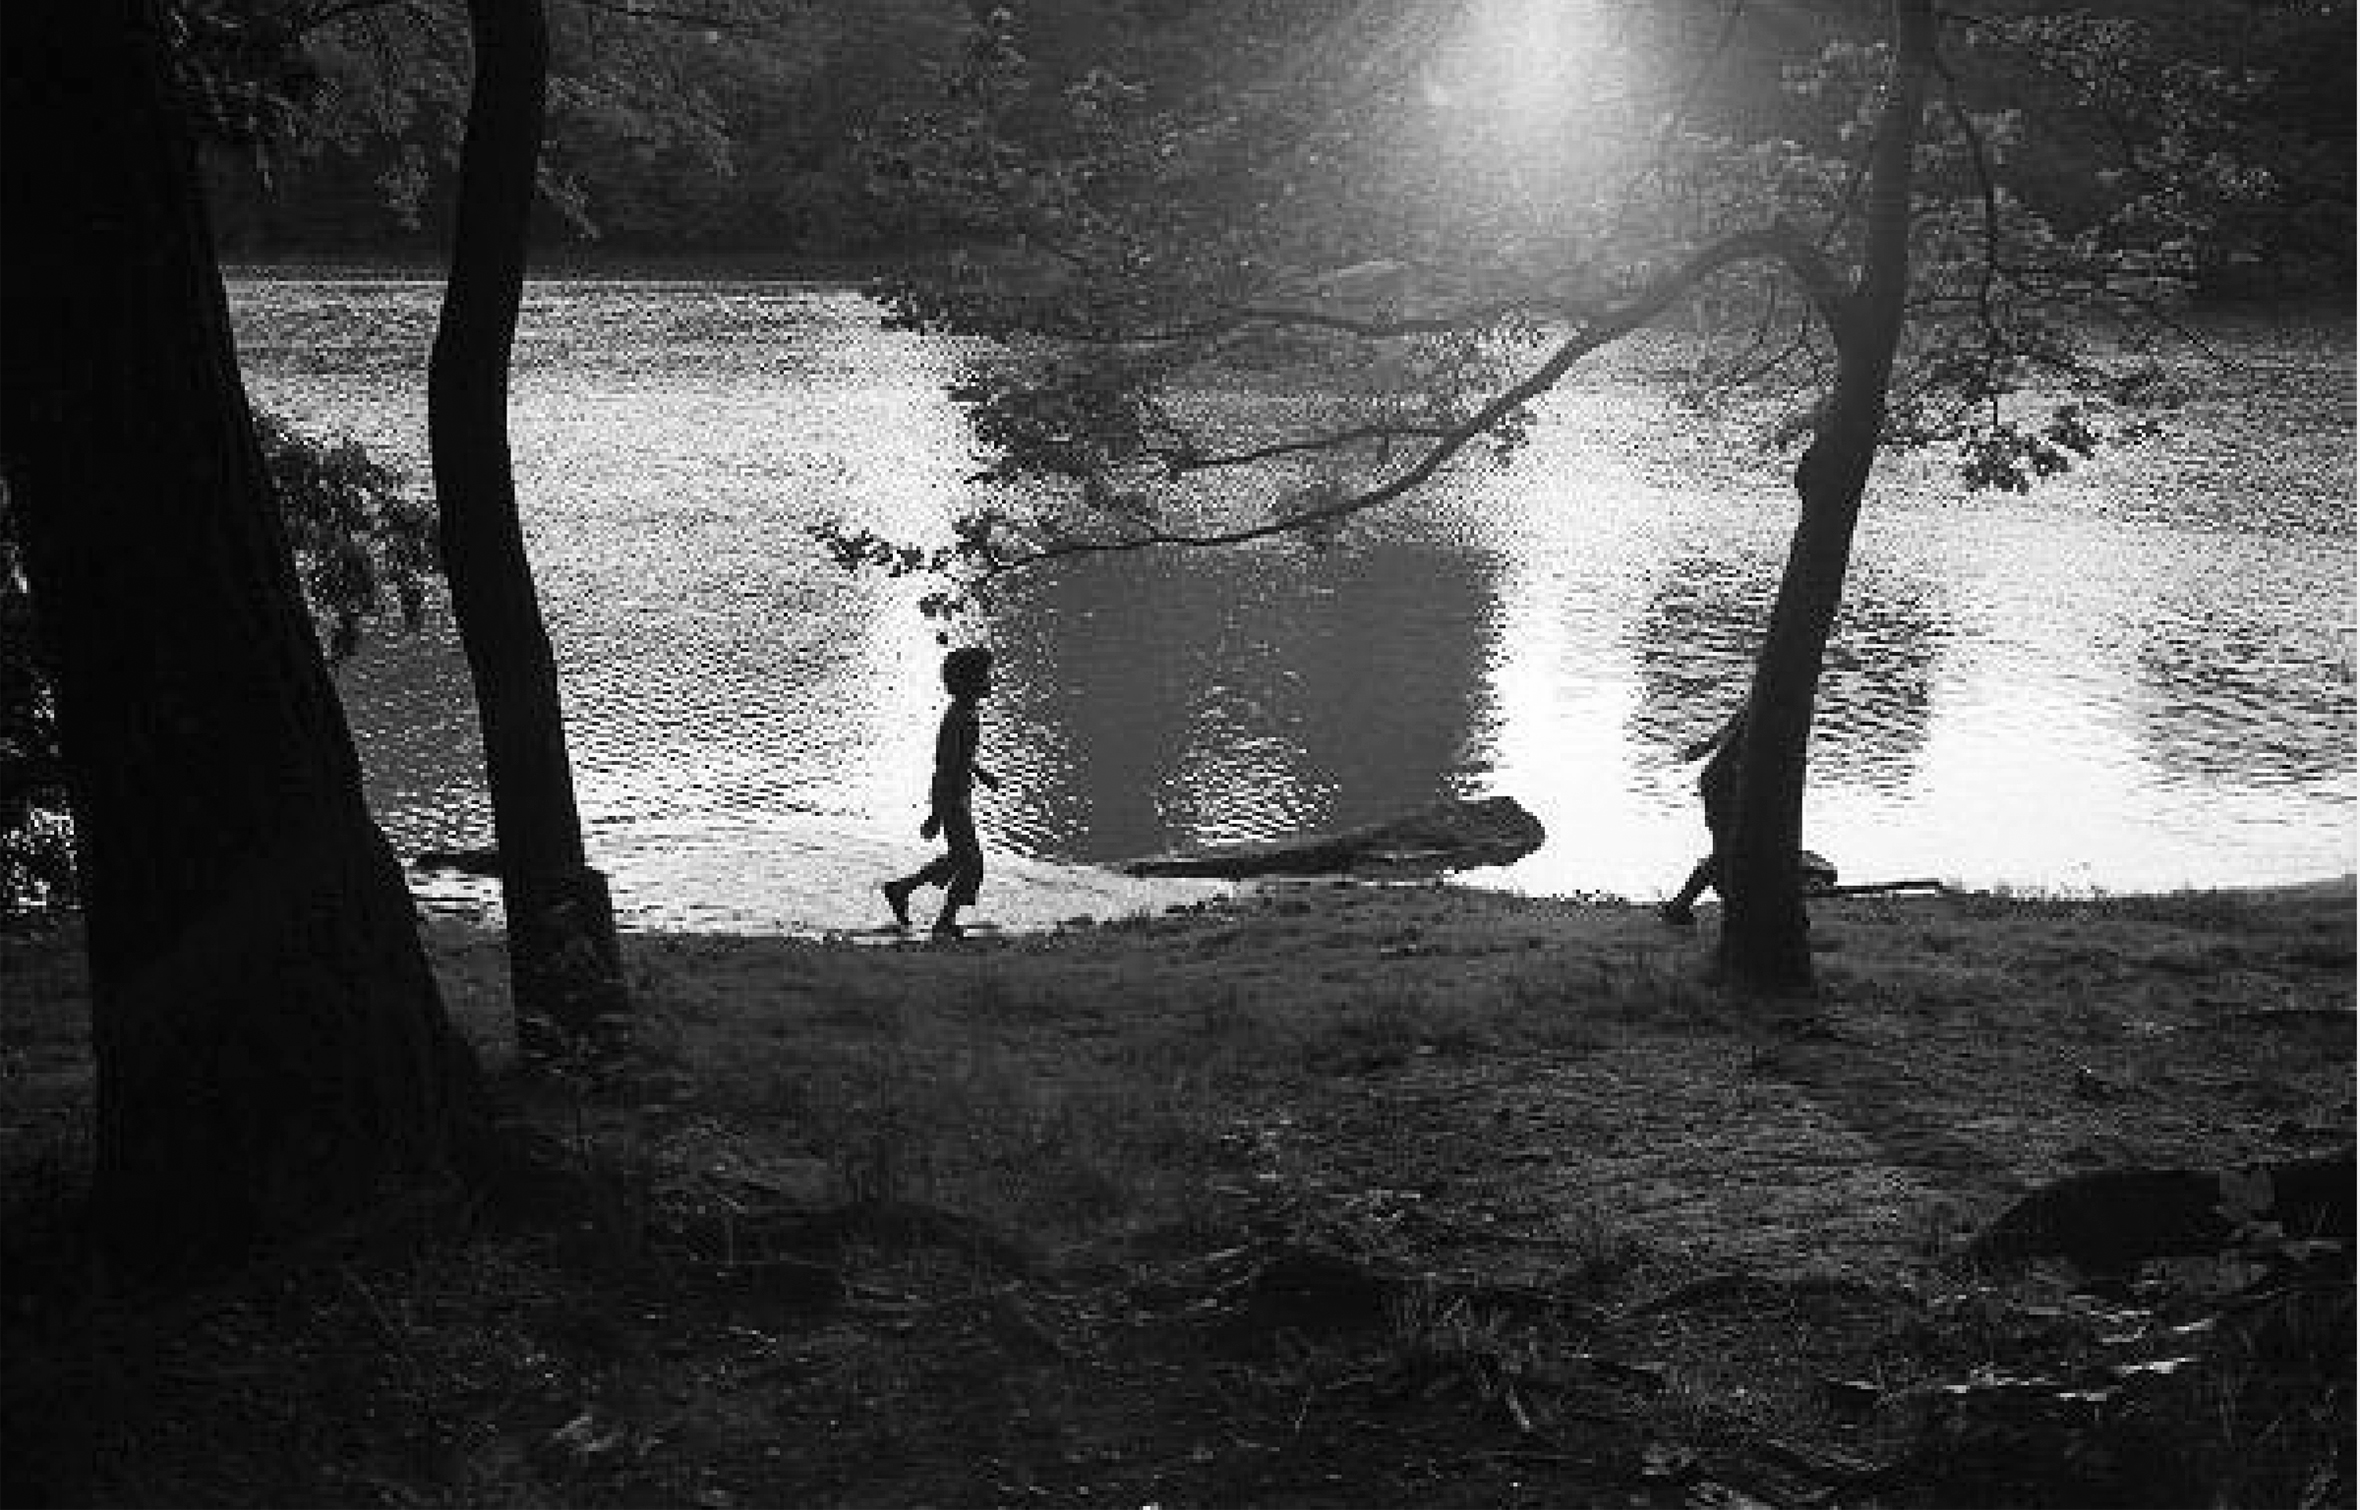 The silhouettes of two children as they walk along a lakeshore.